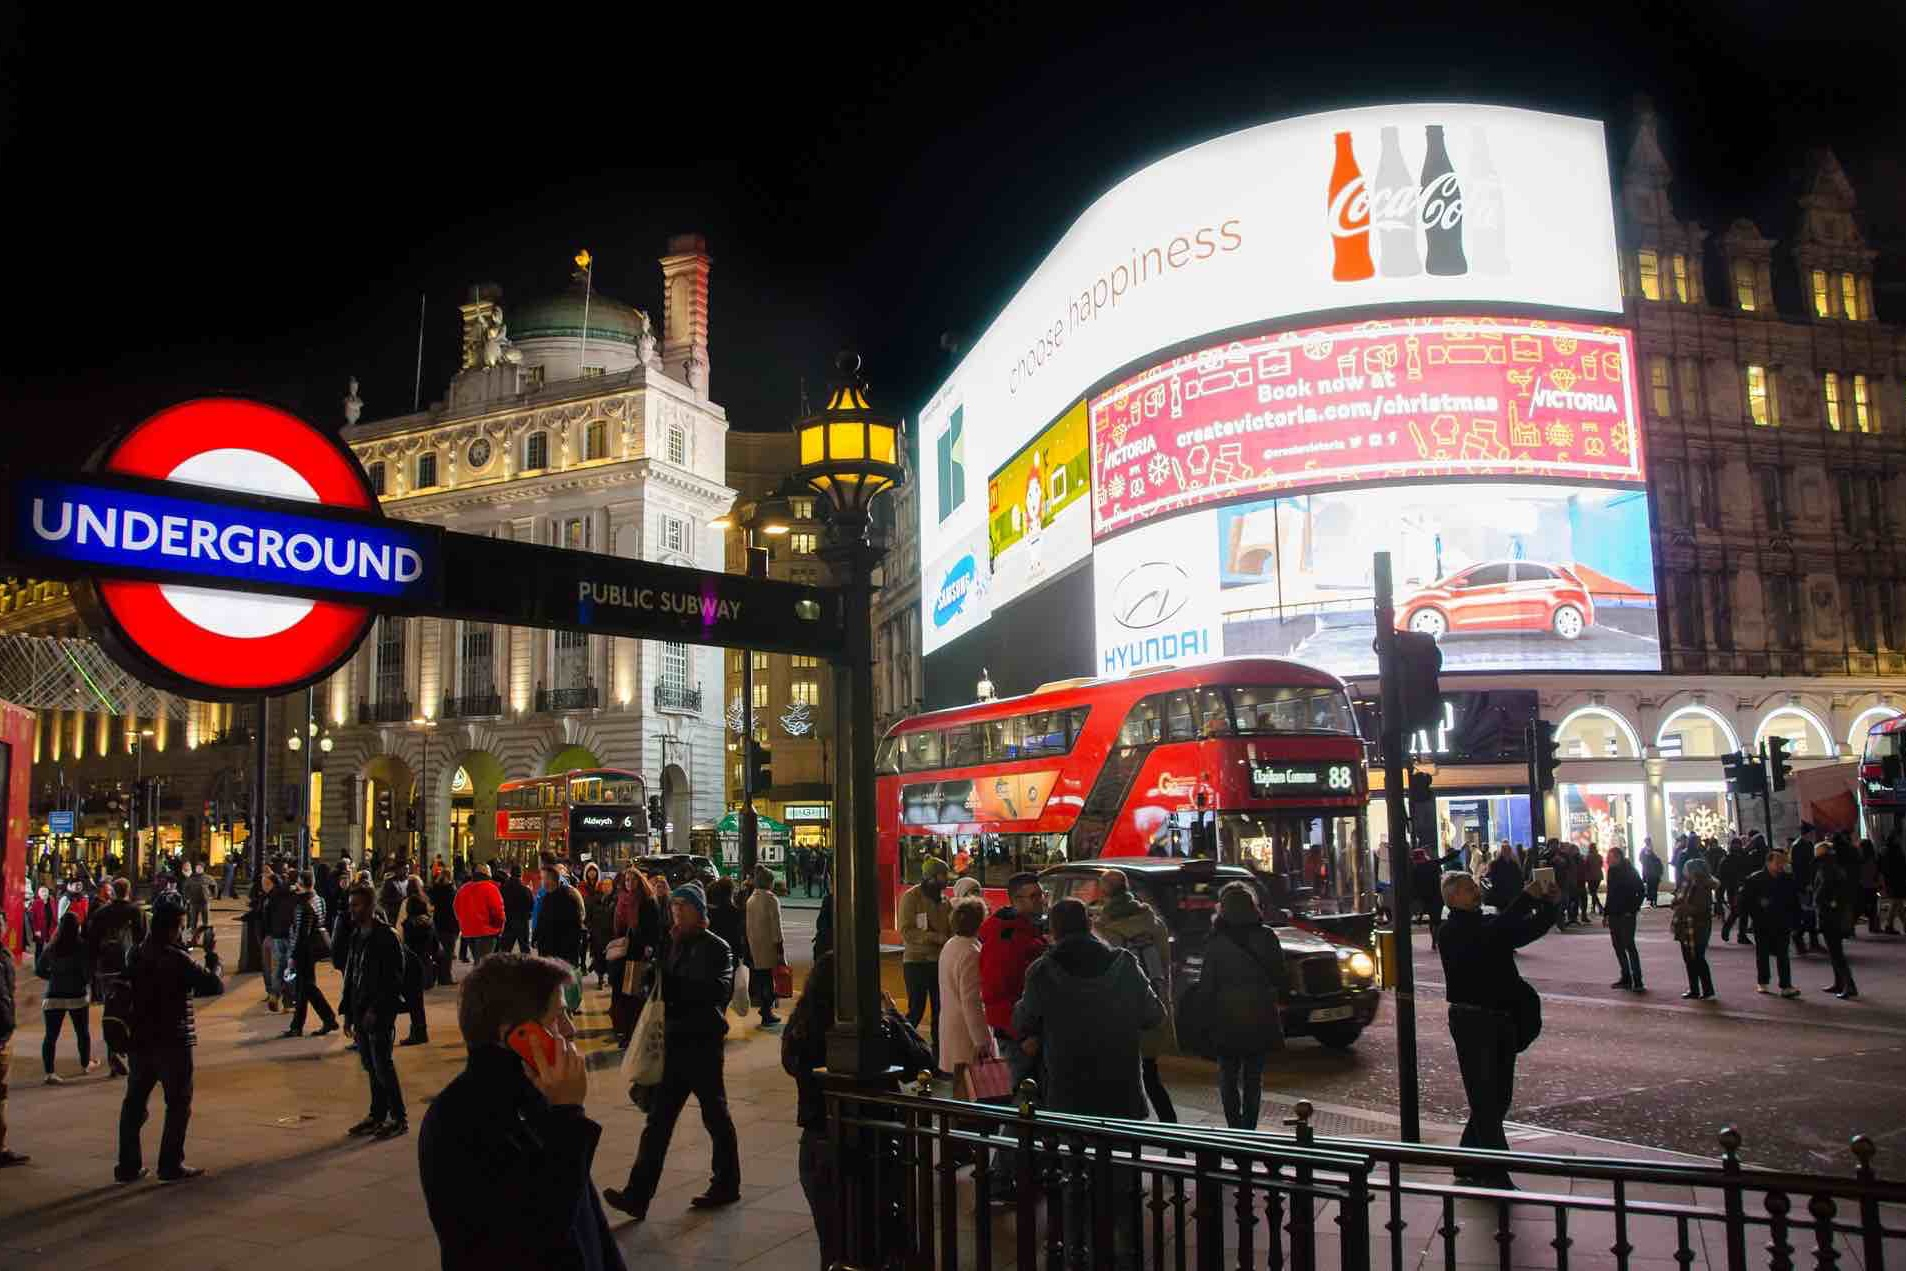 7/Piccadilly Circus Underground Station